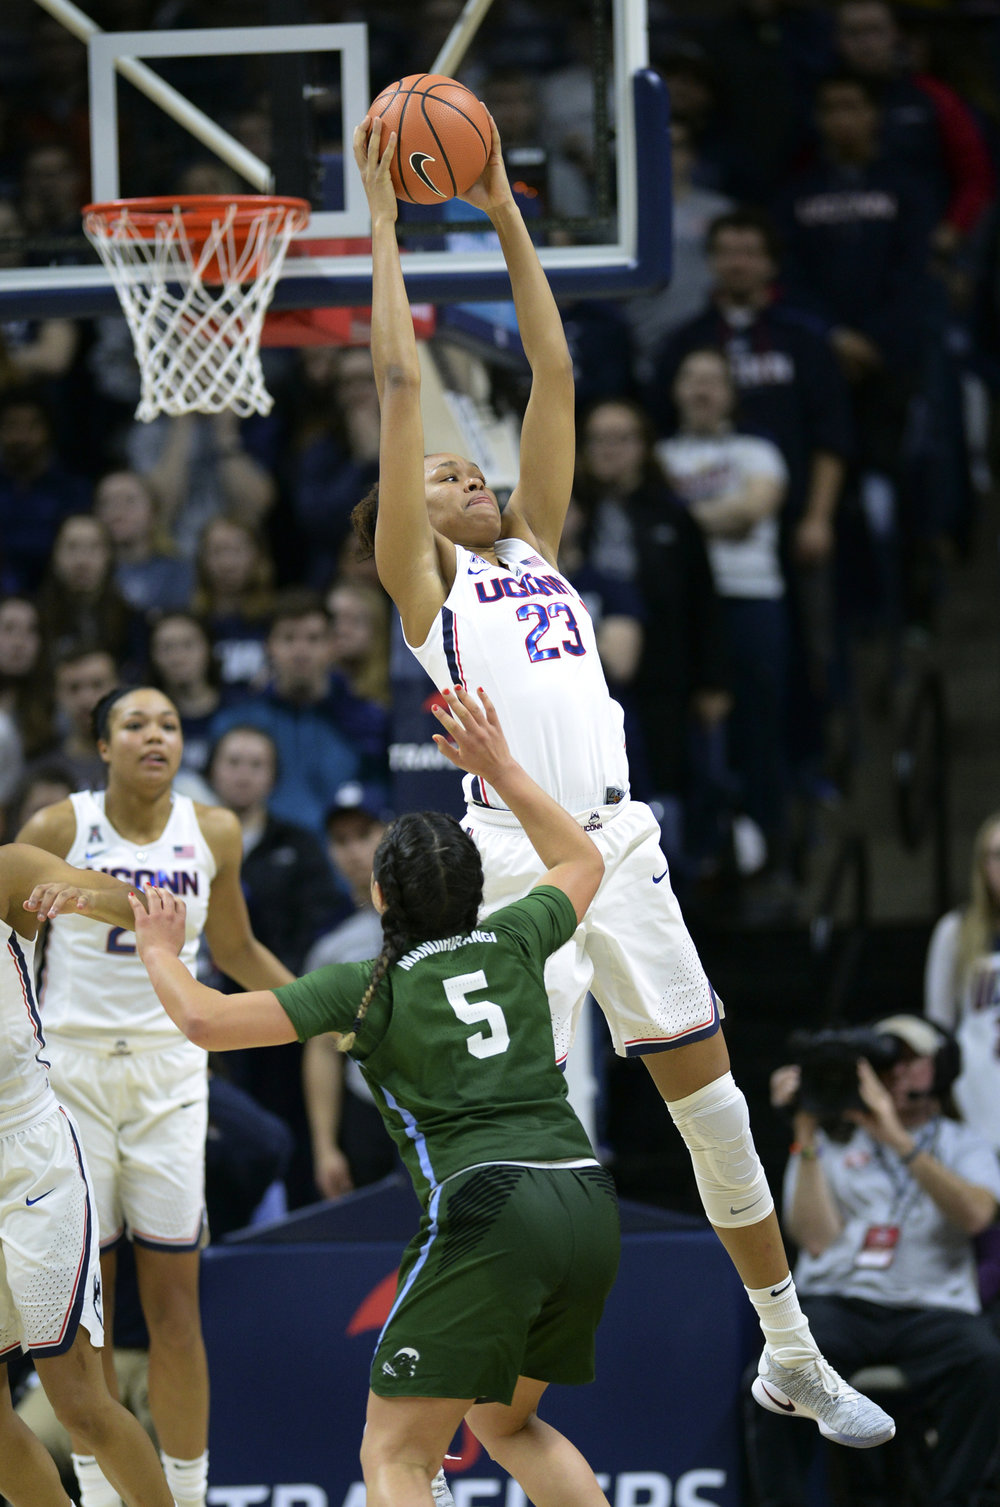 Azura Stevens (23) grabs a rebound over Tulane's Kayla Manuirirangi (5) in the second half of an NCAA college basketball game Saturday, Jan. 27, 2018, in Storrs, Conn. UConn won, 98-45. (Stephen Dunn/AP)